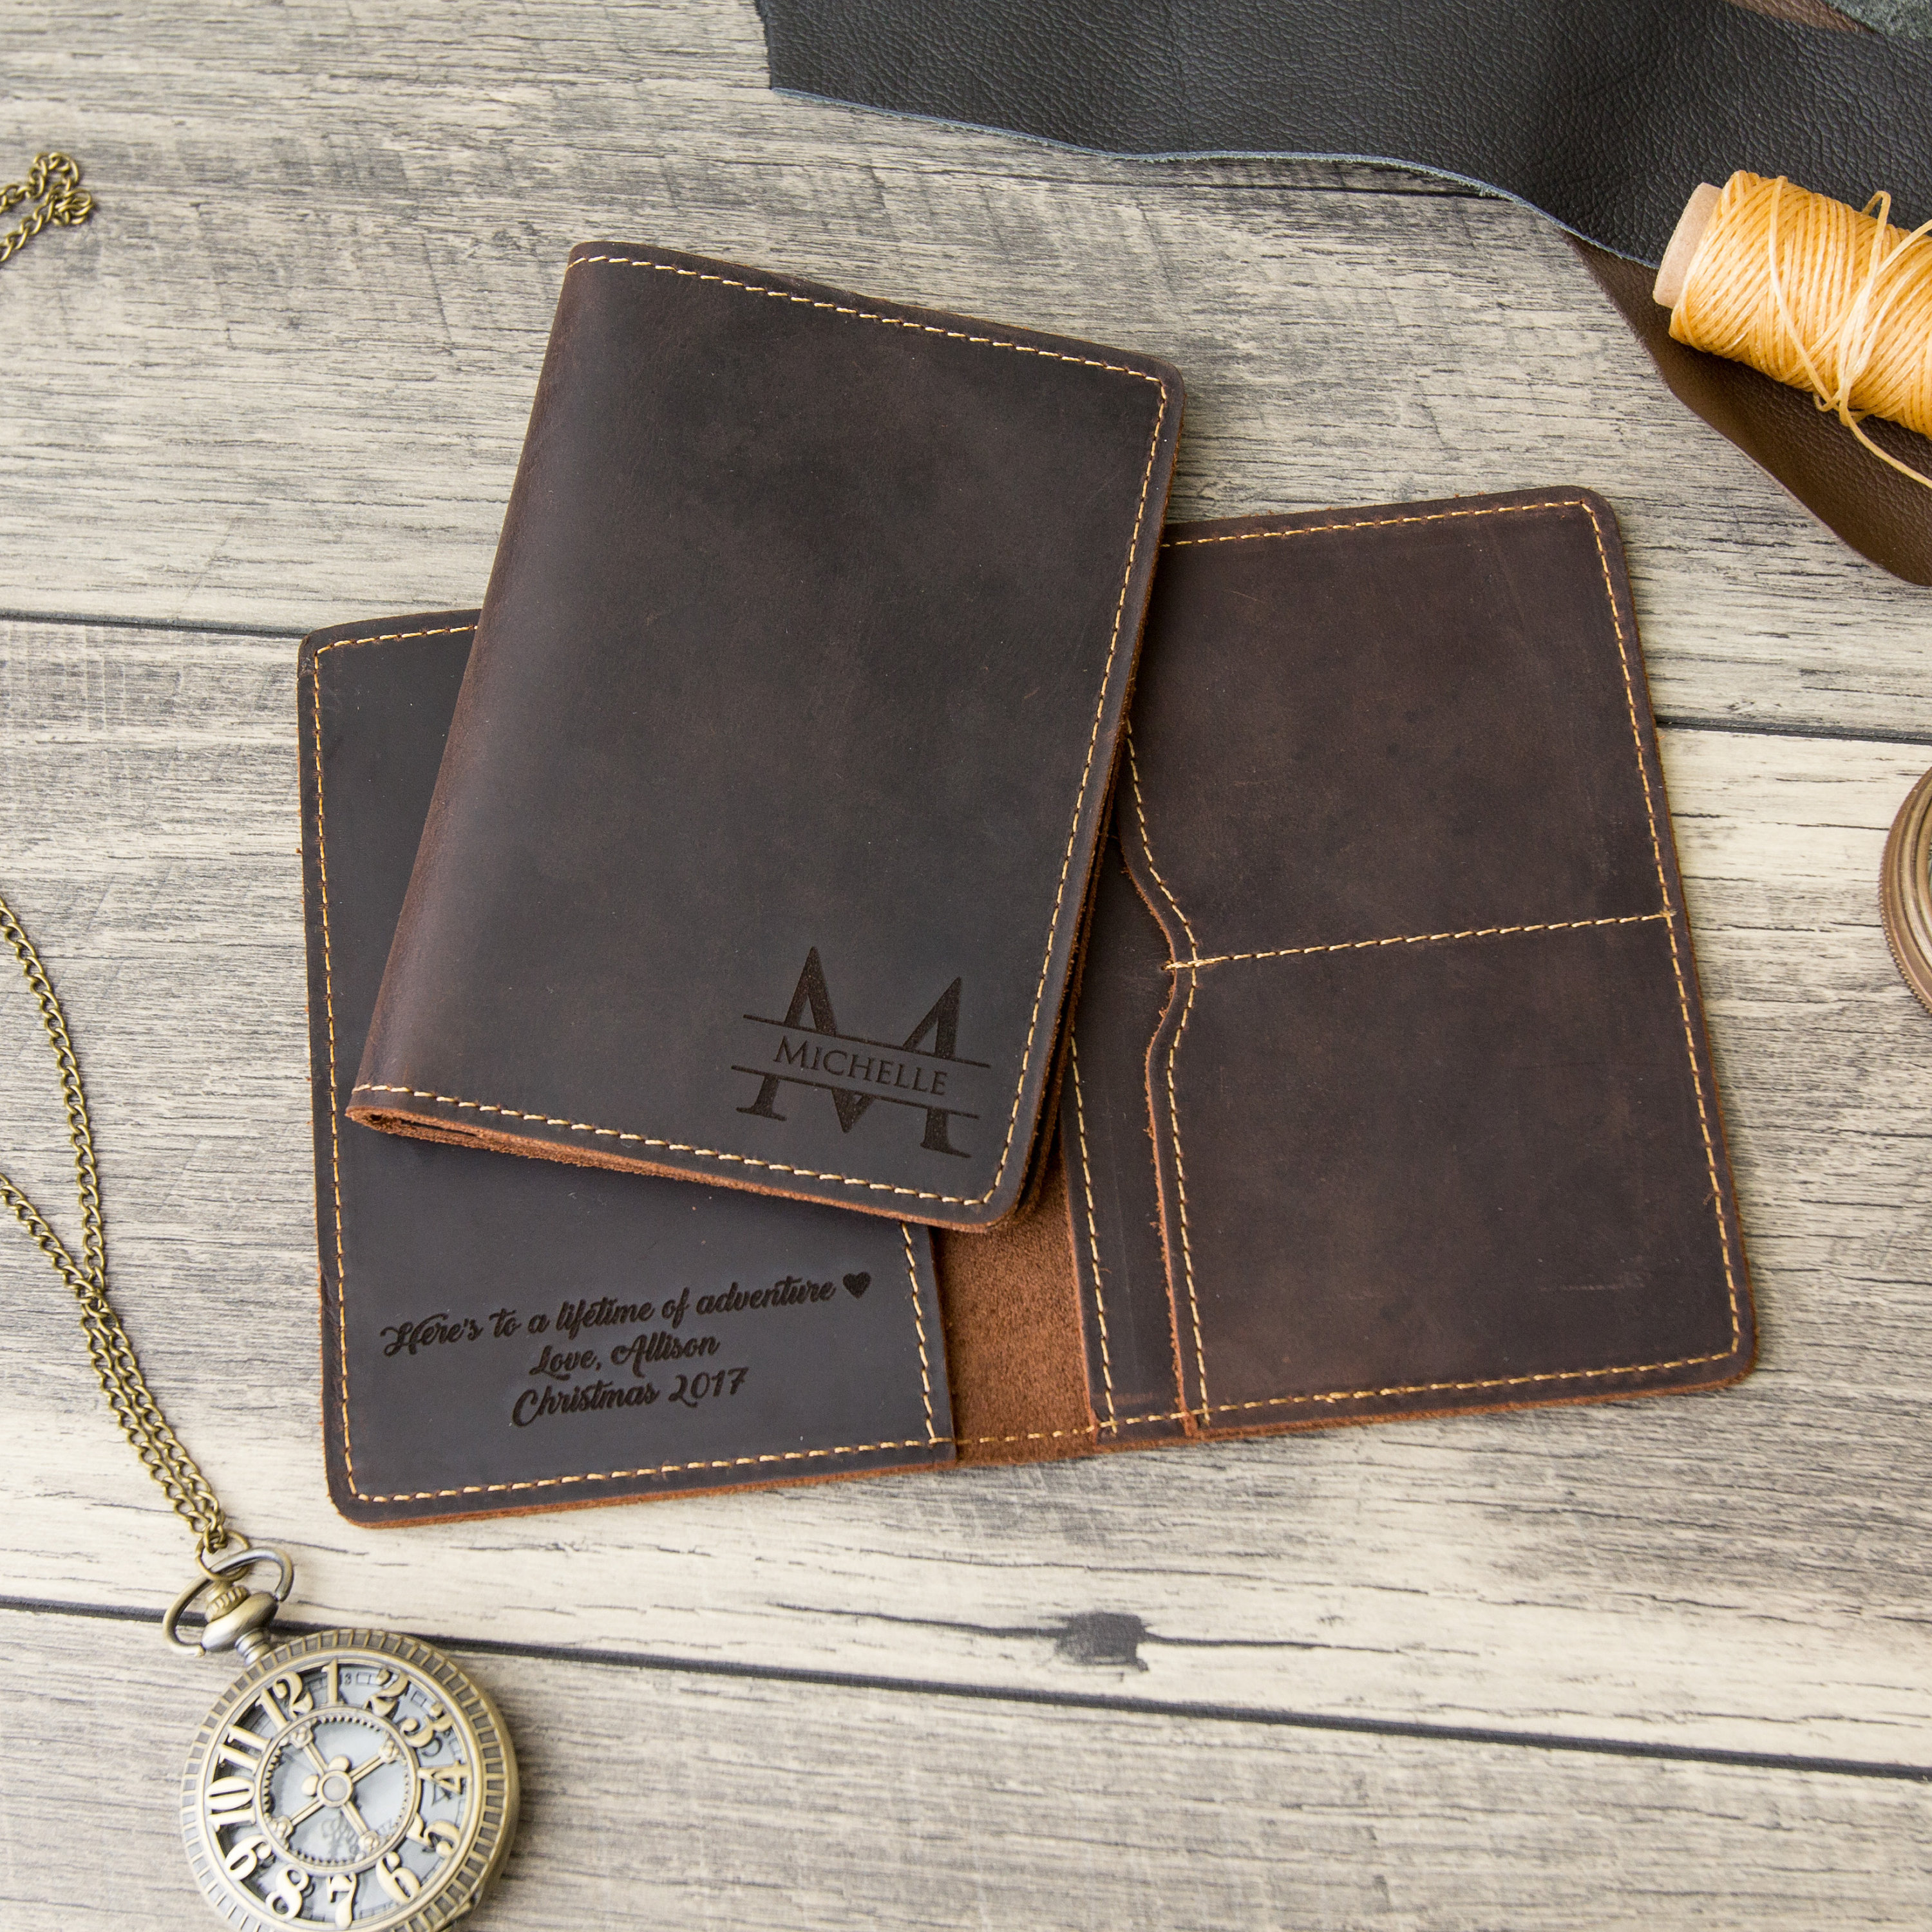 4cacb82e7343 Engraved Passport Holder, Personalized Leather Passport Cover - 3rd  Anniversary Gift for Husband or Wife, Custom Travel Wallet Sleeve